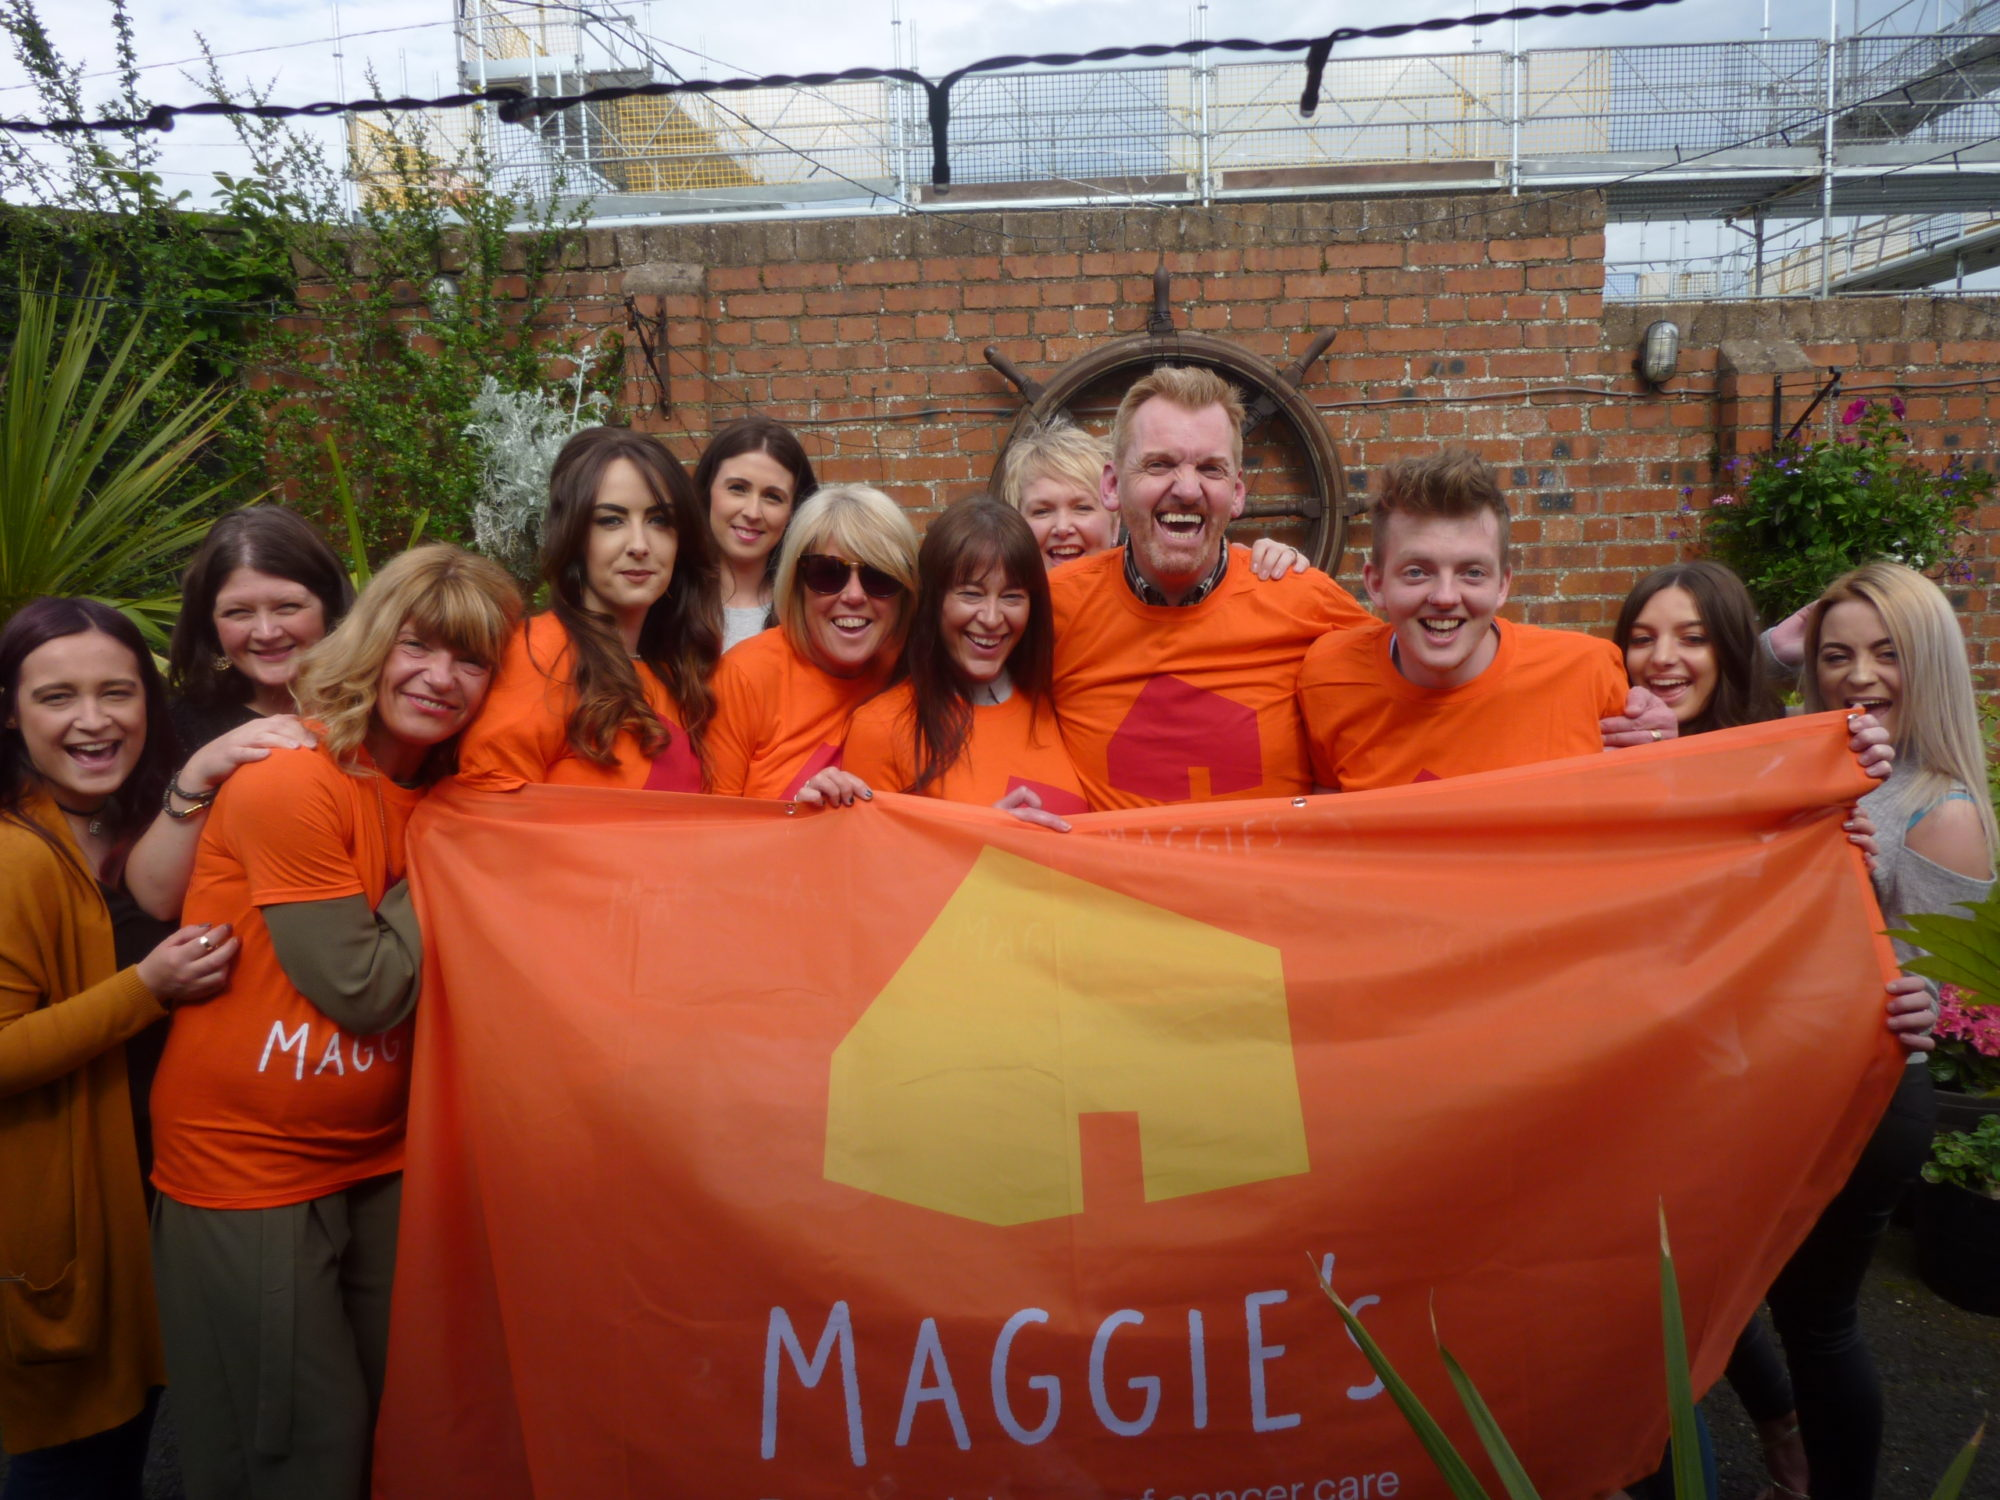 Byron's support for Fife's Maggies Centre